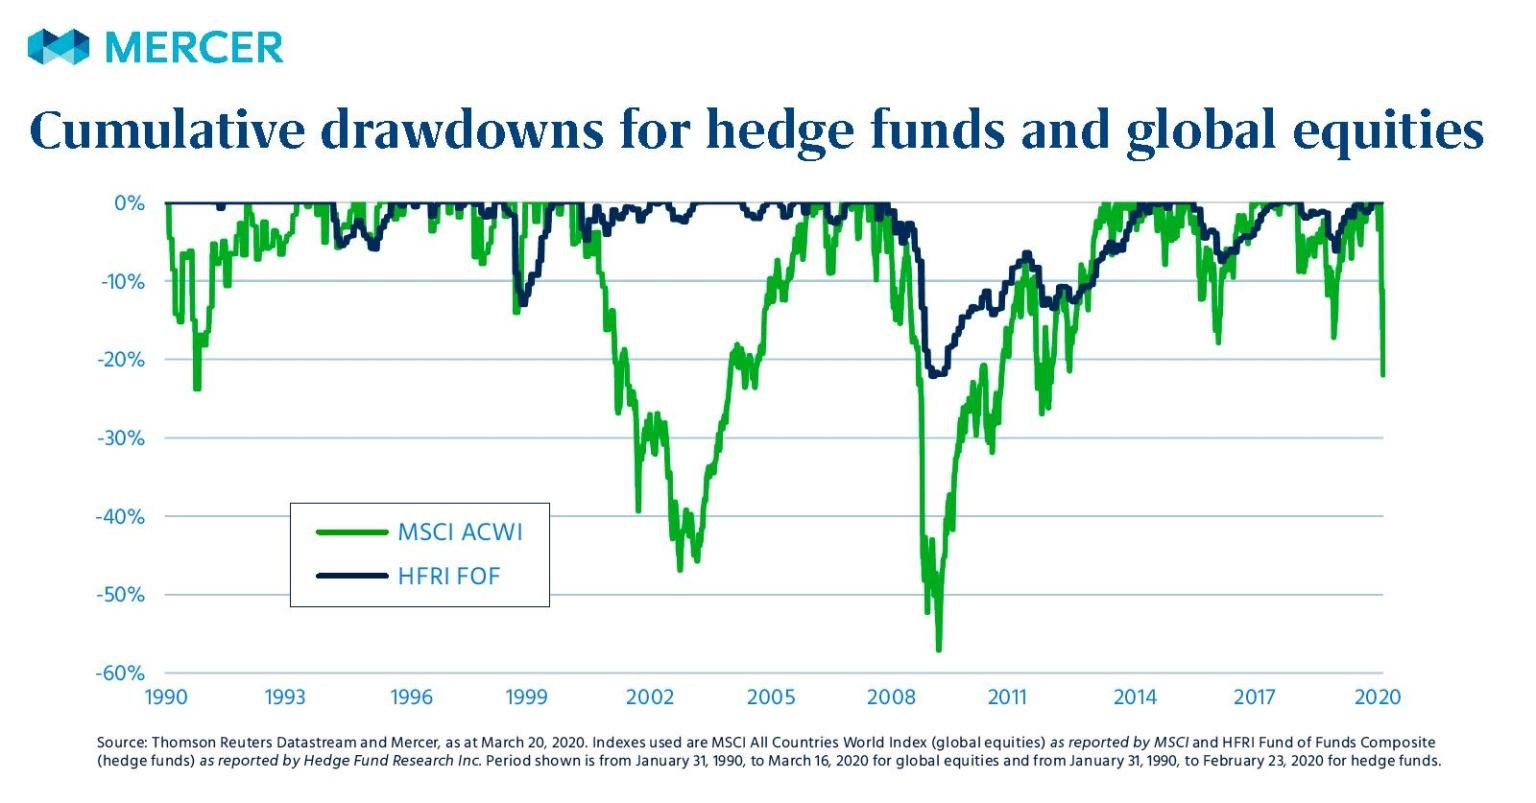 Mercer drawdown graph